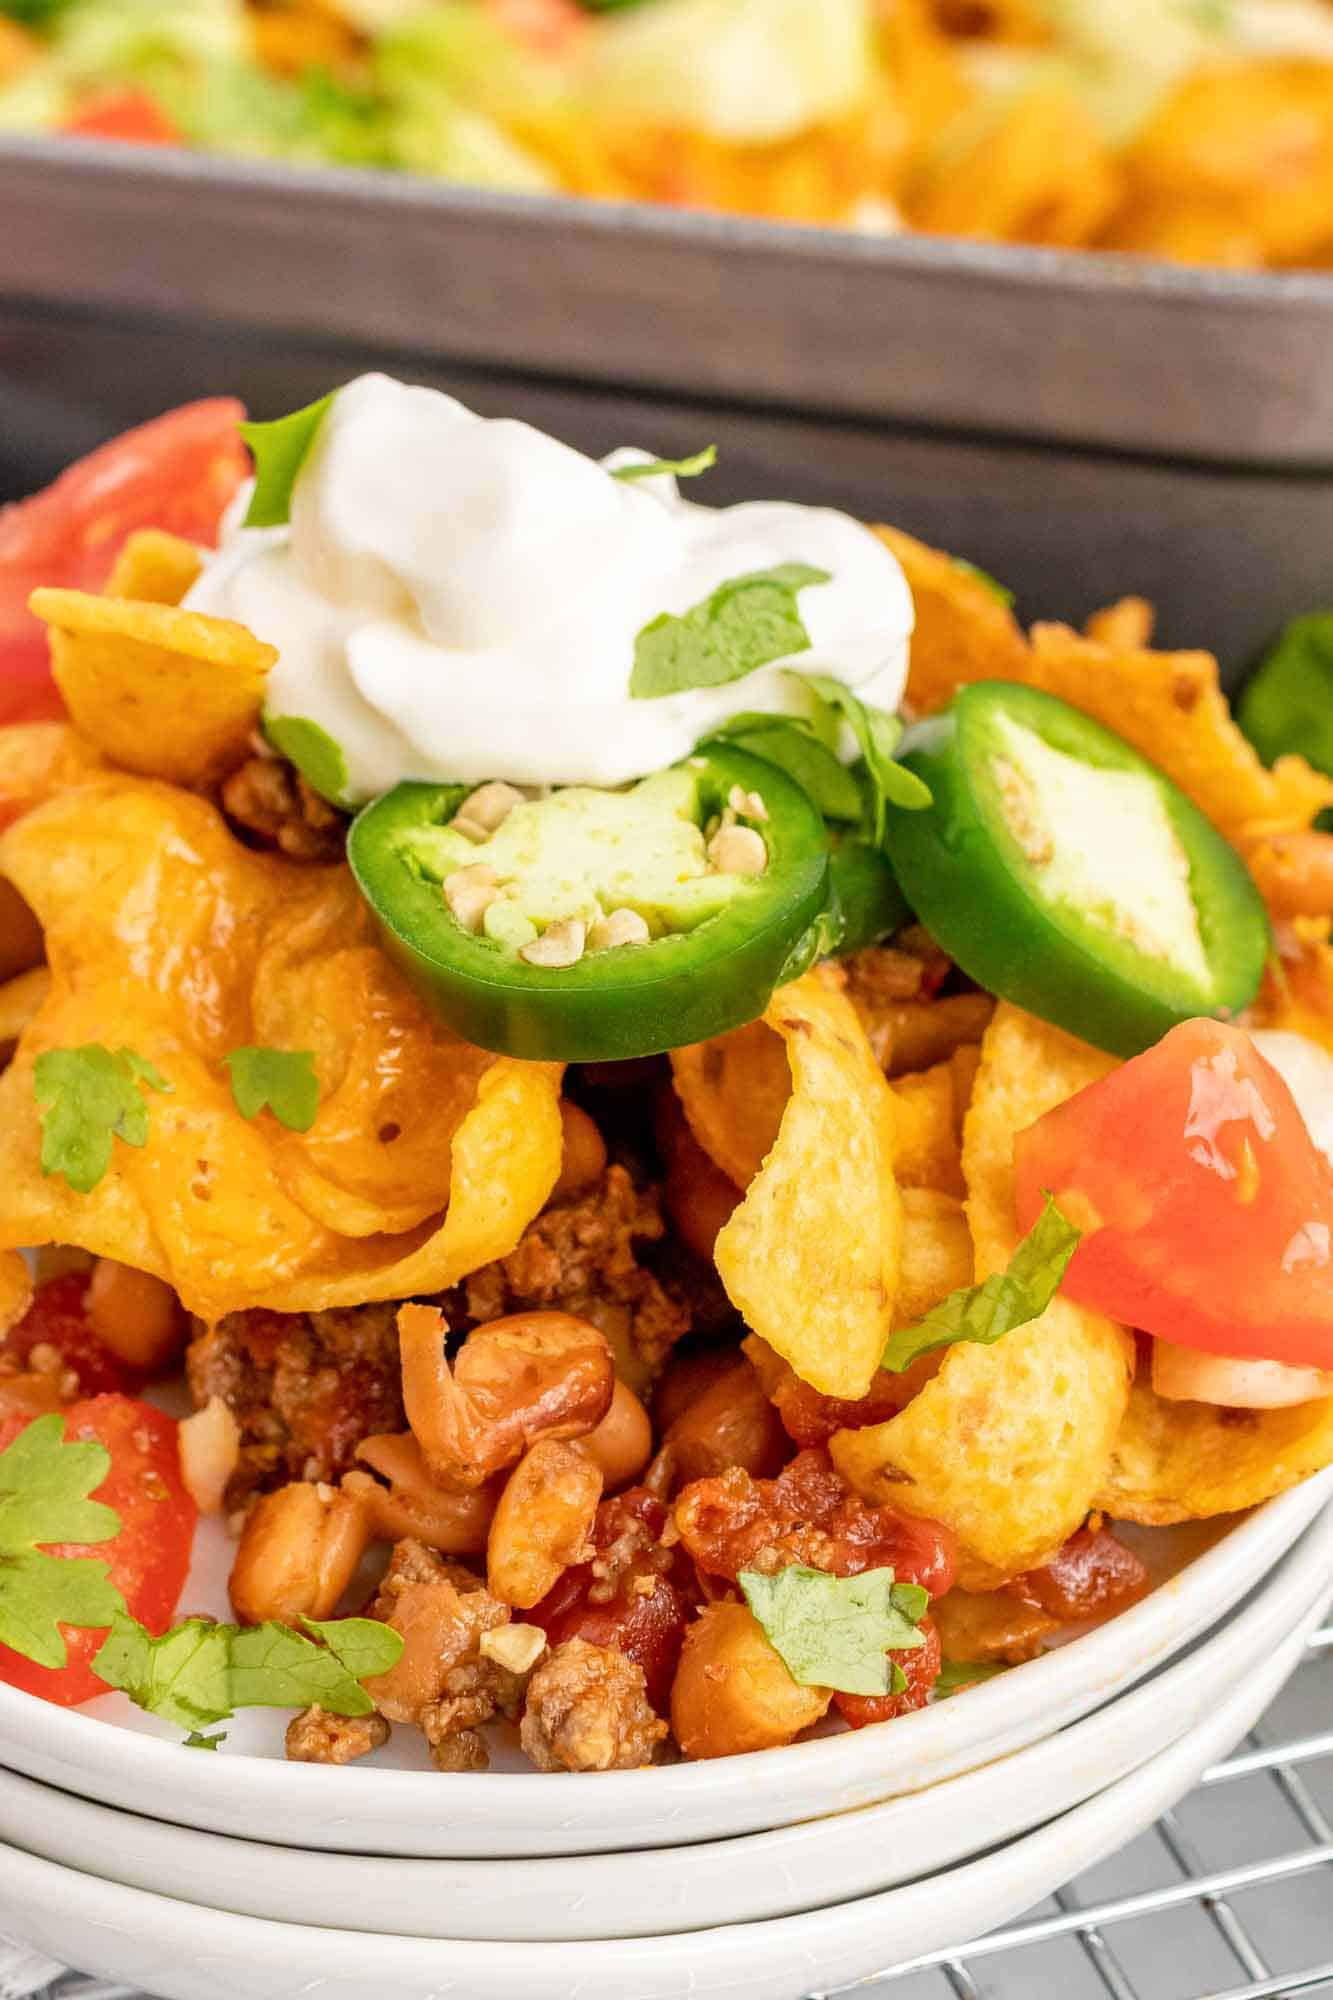 Walking taco casserole plated for one person